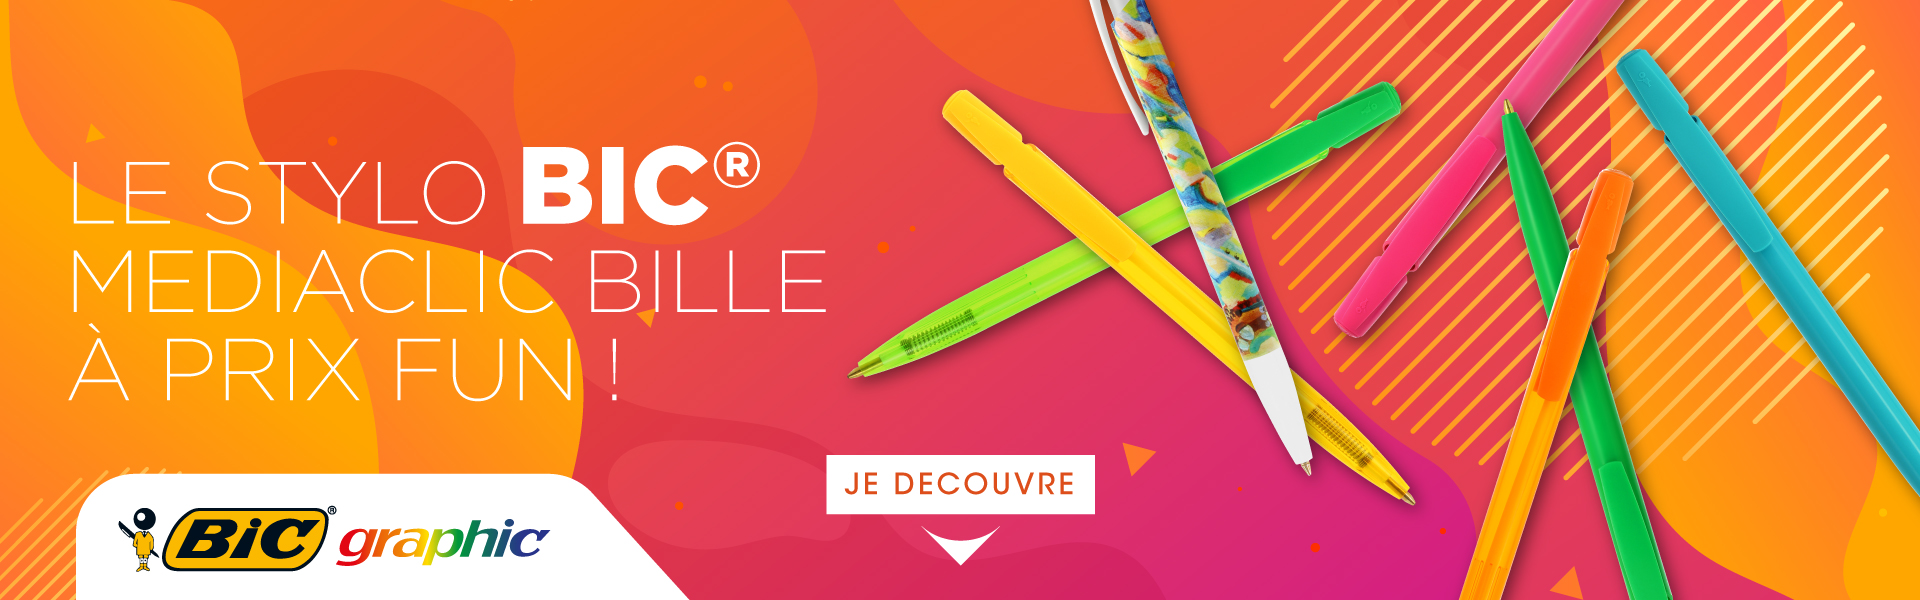 Stylo bic media clic bille